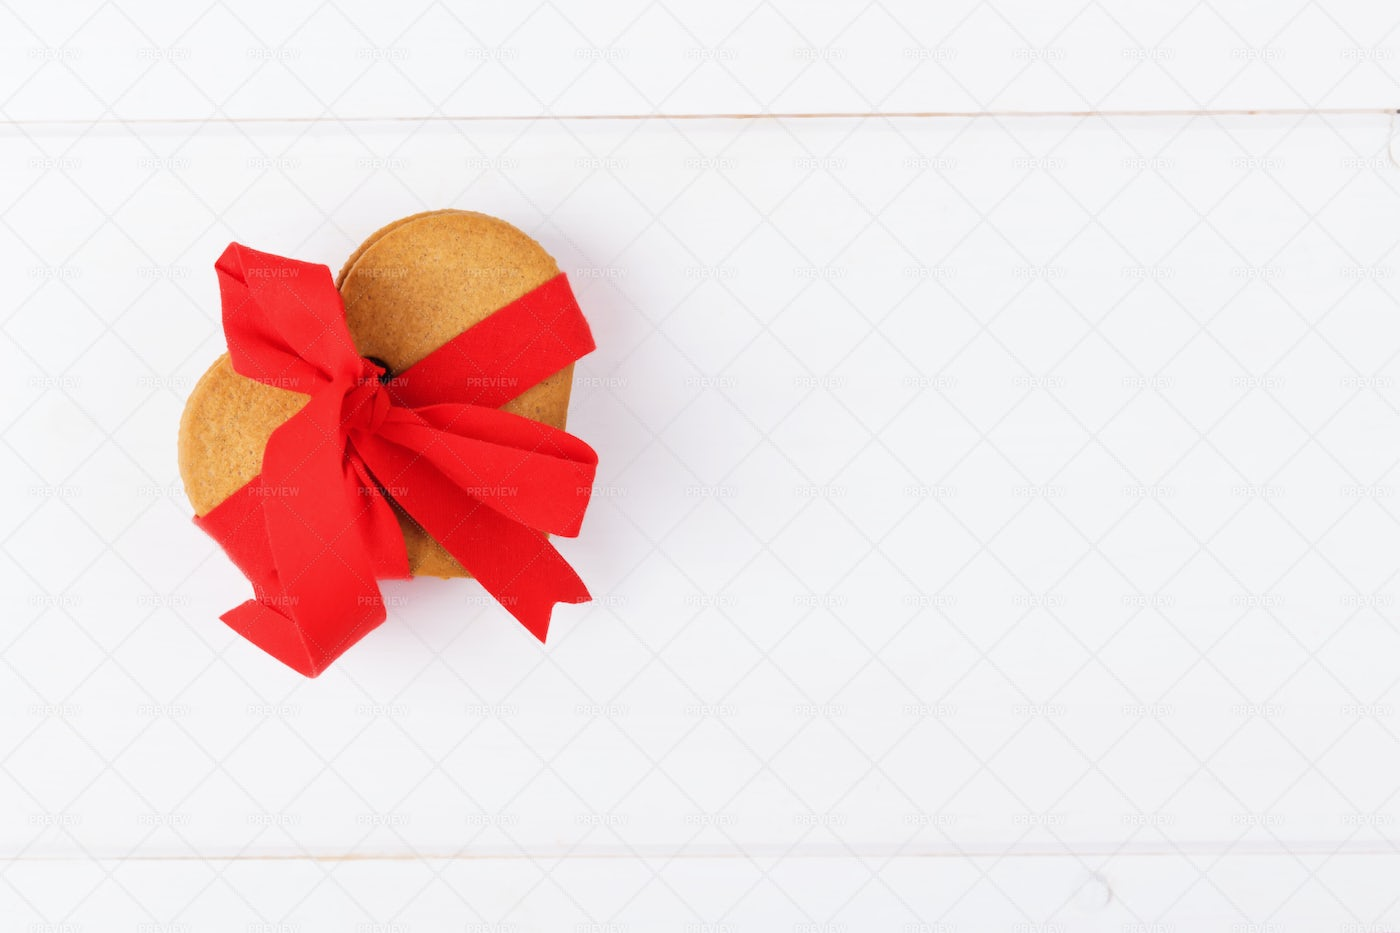 Cookies In A Red Ribbon: Stock Photos